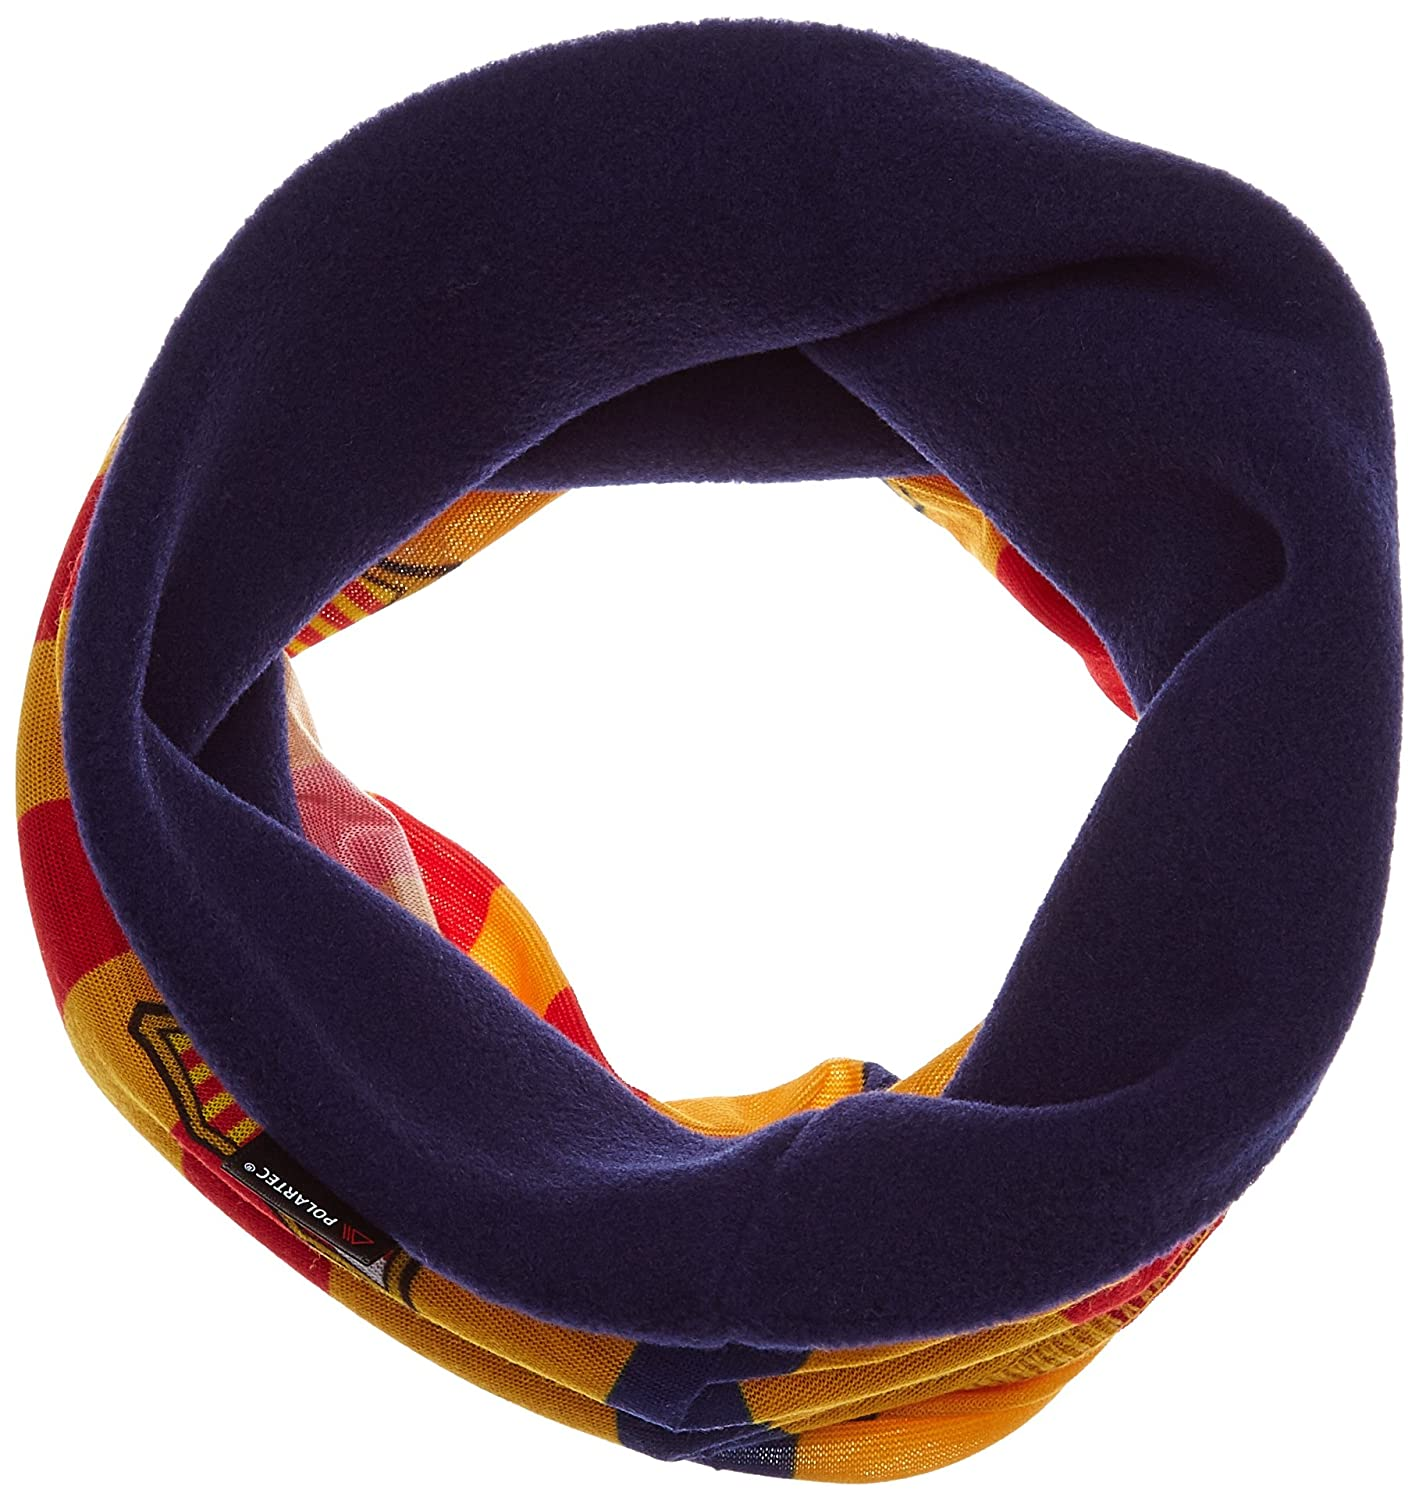 Buff Junior Polar FC Barcelona 2Nd Equipement 15 a 16, tejido multifuncional de tela Equipment Talla única 111332 00